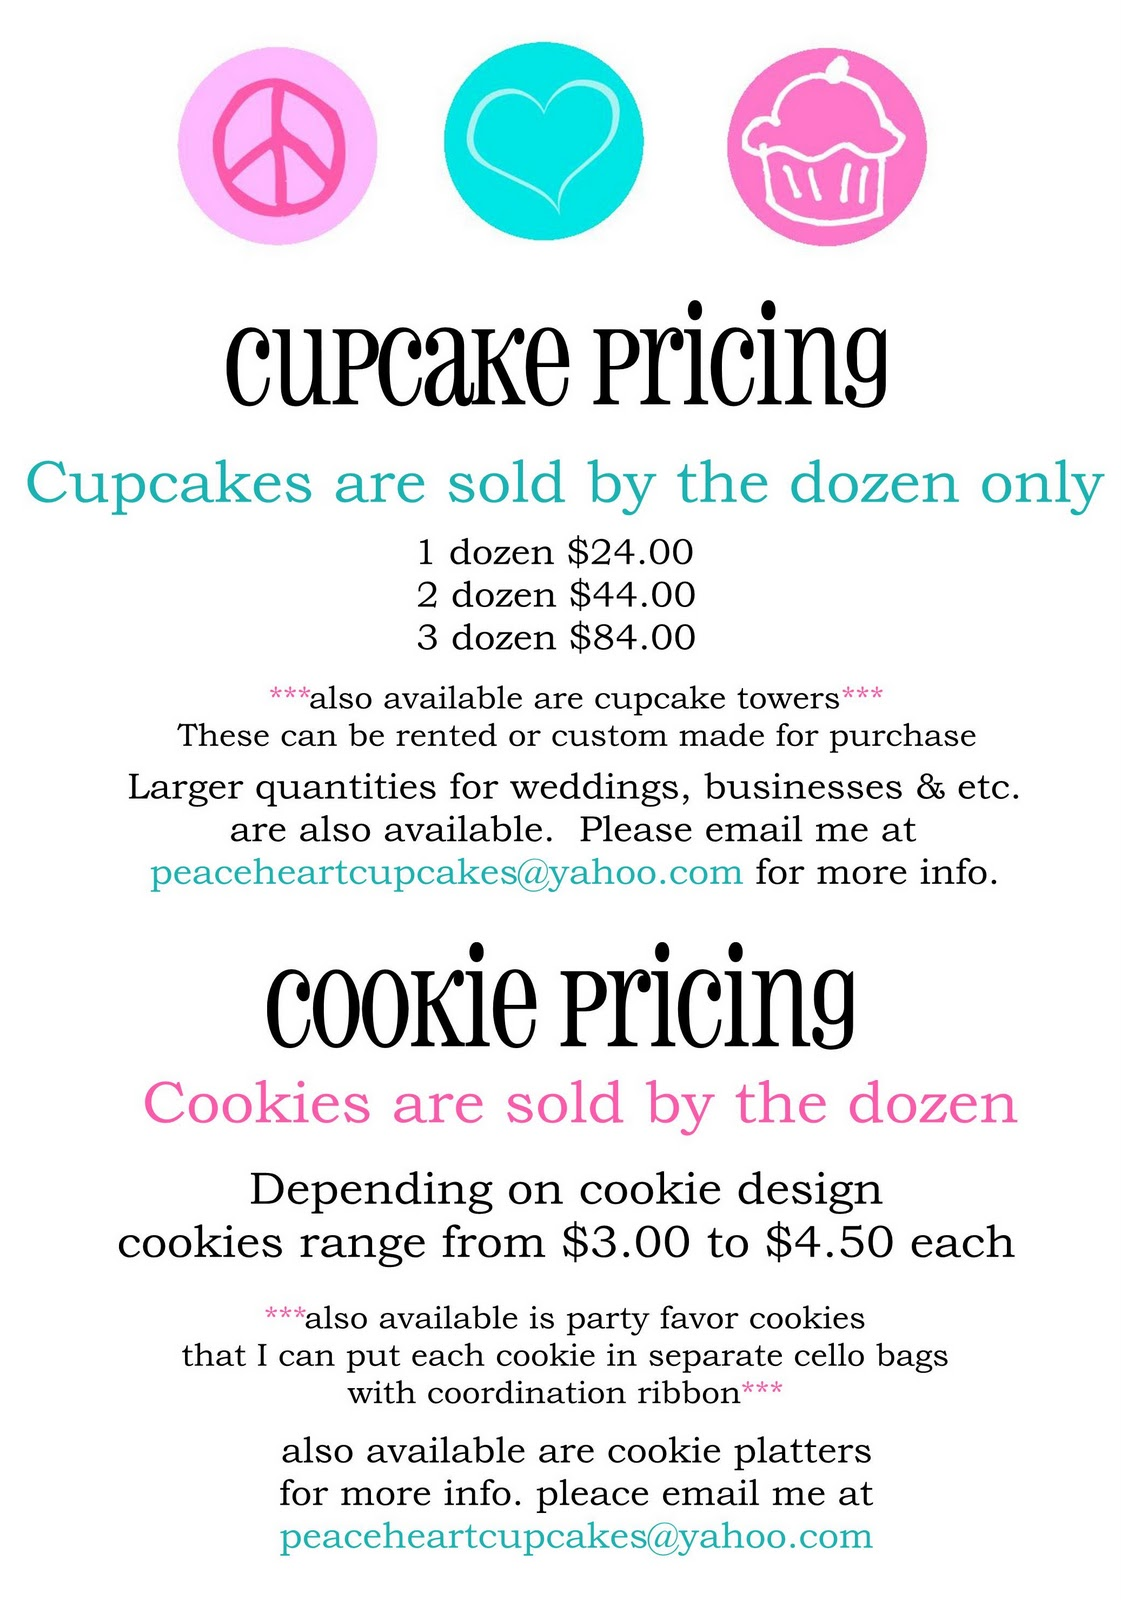 Pricing Cupcakes